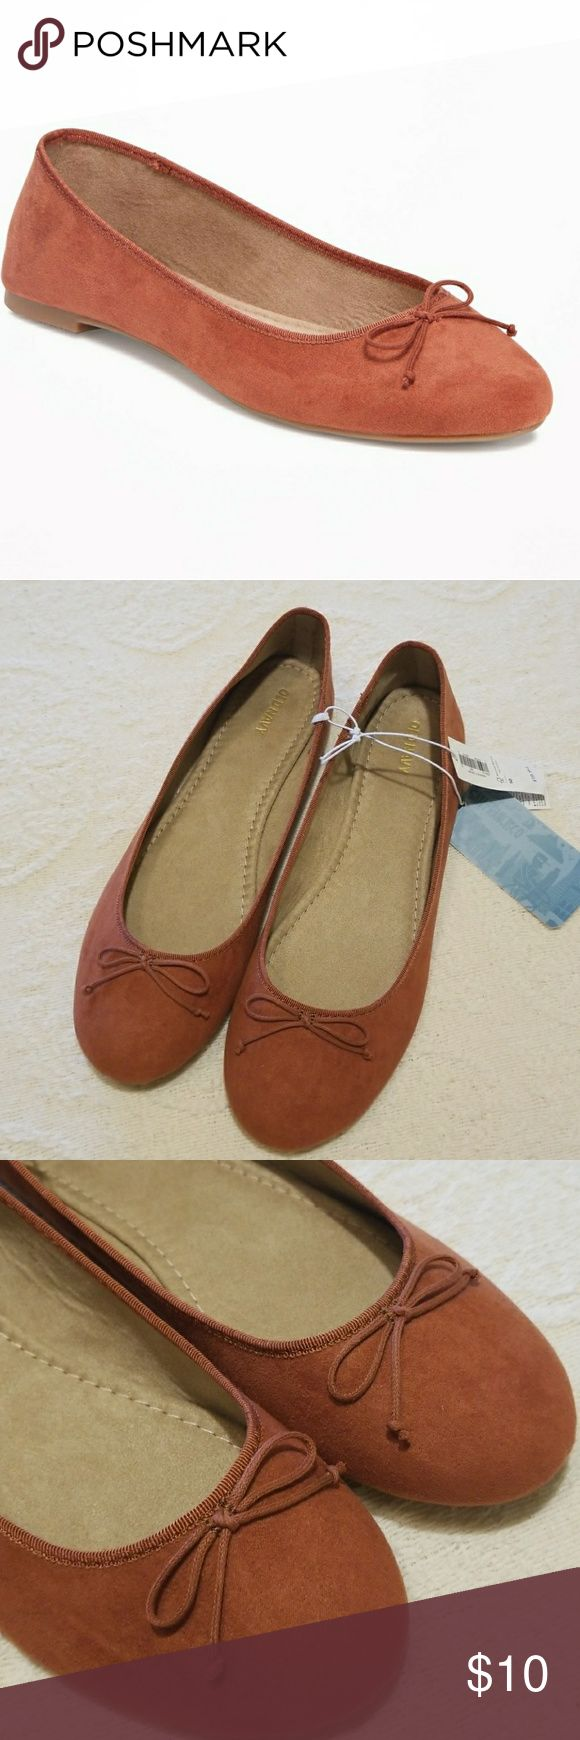 Old navy ballet flats size 10 Old navy ballet flats. Size 10. New with tags. Color is a rust/Brown. Super comfy. Old Navy Shoes Flats & Loafers